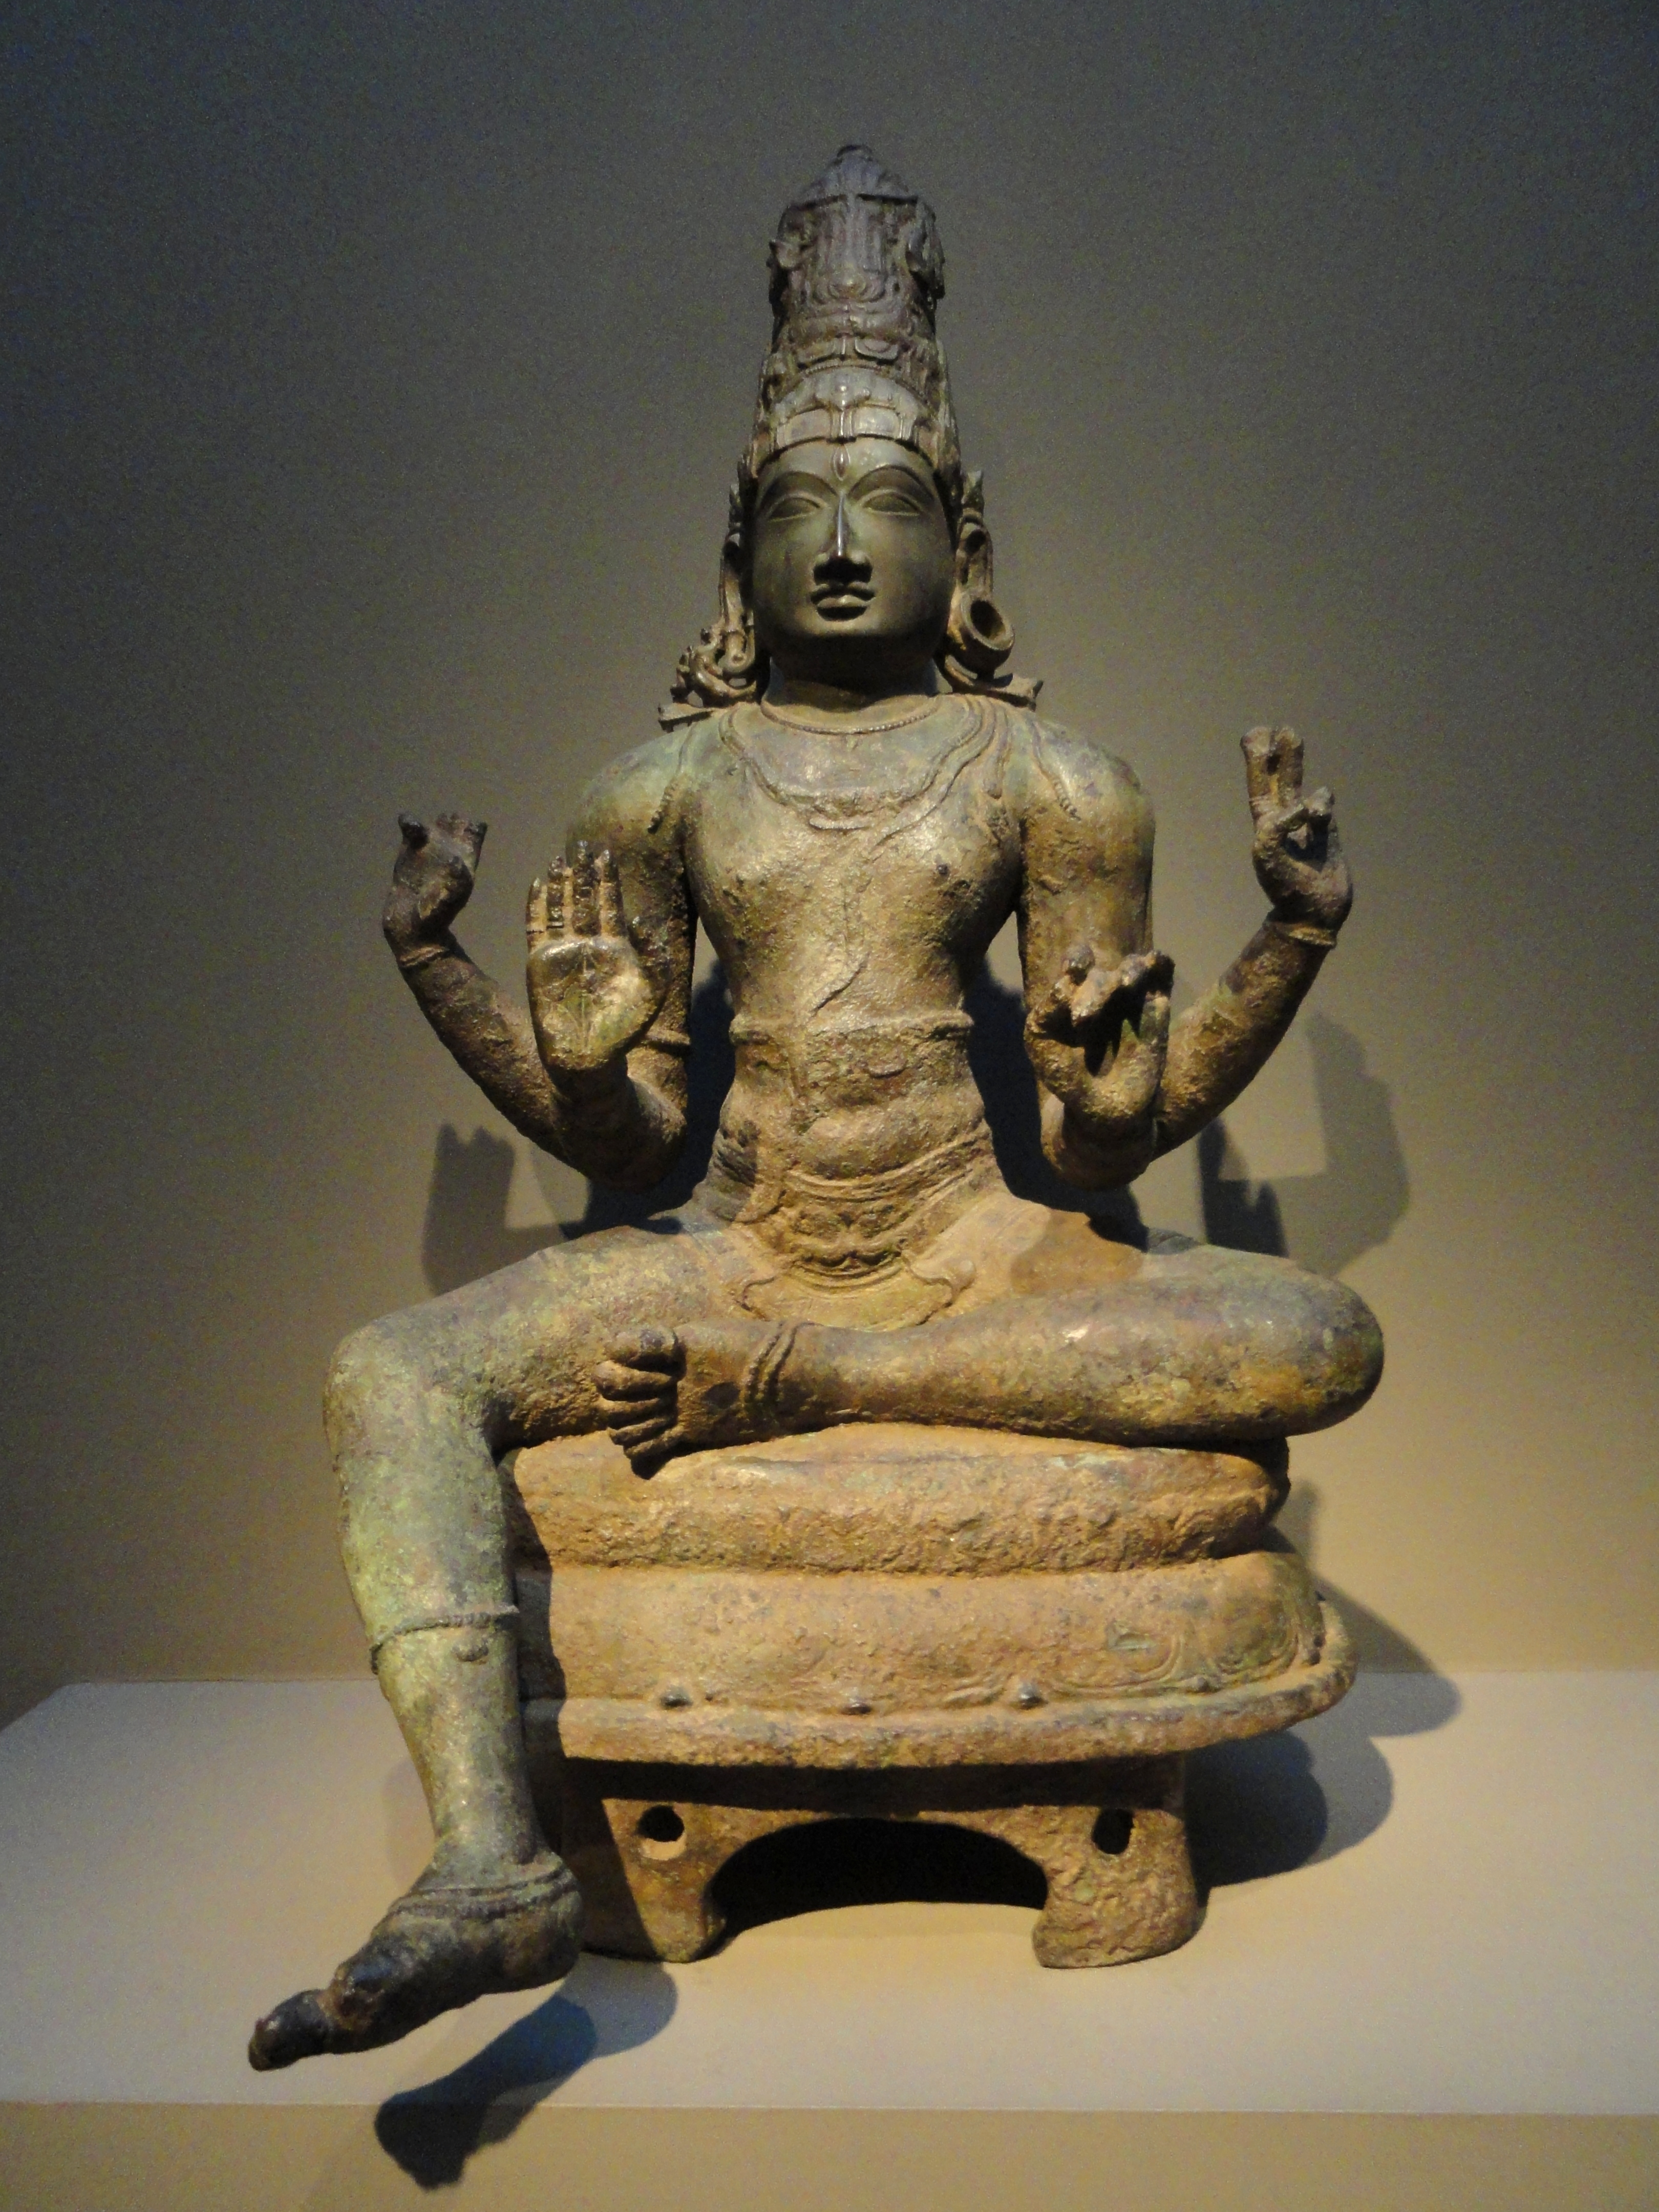 an overview of the indian history in the late 14th century Early 14th century: attributed to kao ninga monk sewing is made kamakura period 1336 — the vijayanagara empire is founded in south india by harihara and was one of the largest naval battles in history.